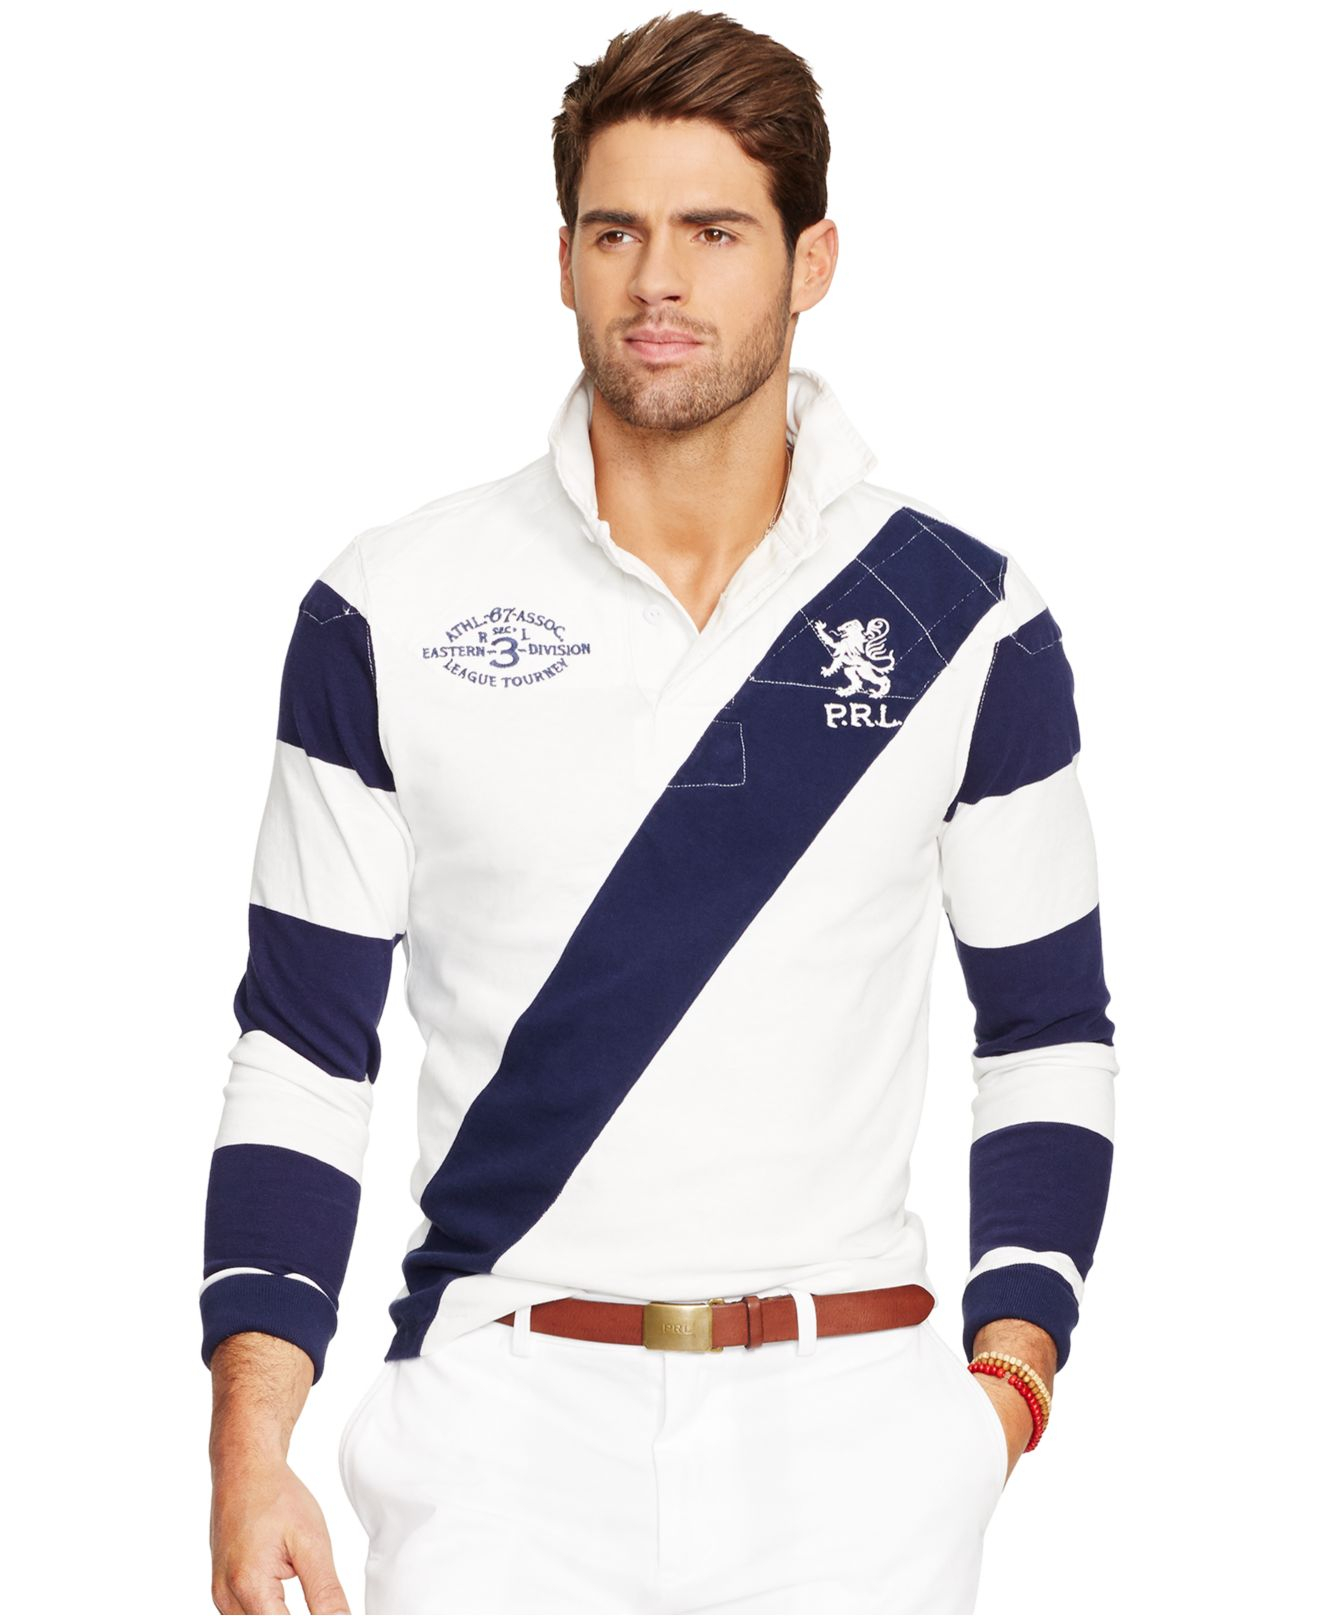 15faaf80830db Polo Ralph Lauren Rugby Shirt Mens